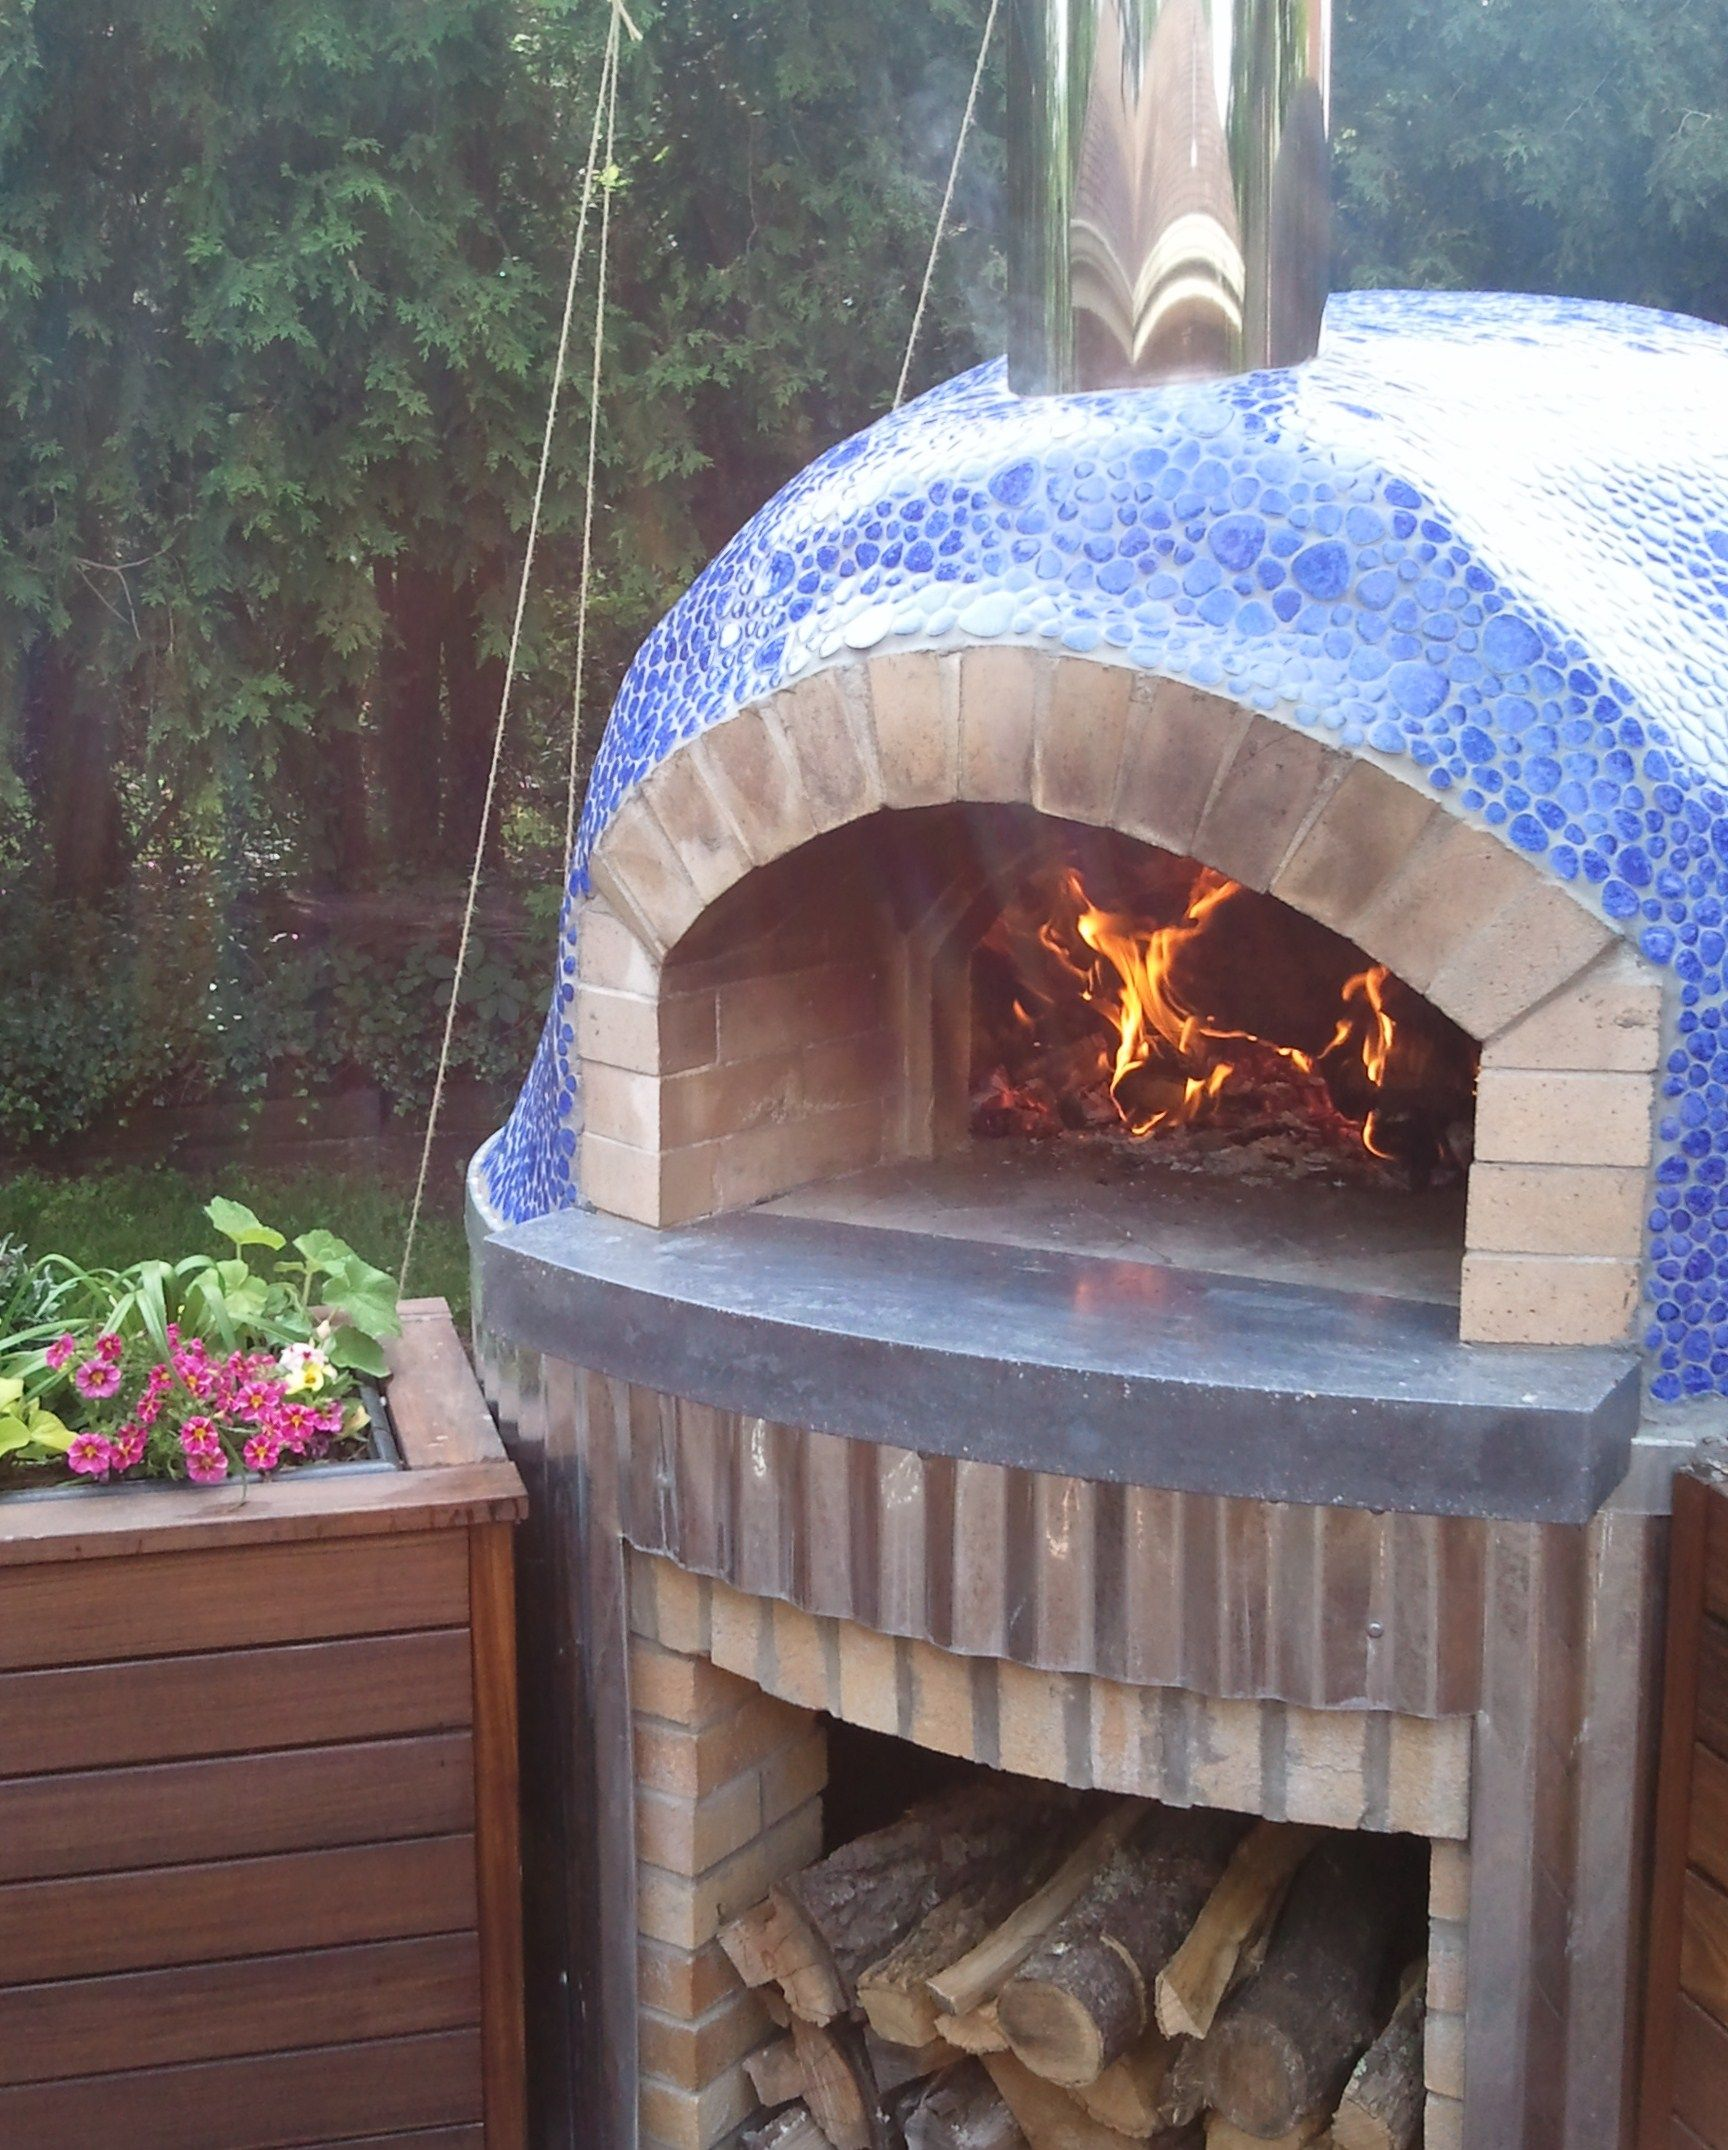 Great Outdoor Kitchen Complete With Pizza Oven: Finished Oven With Blue Tile Mosaic Dome